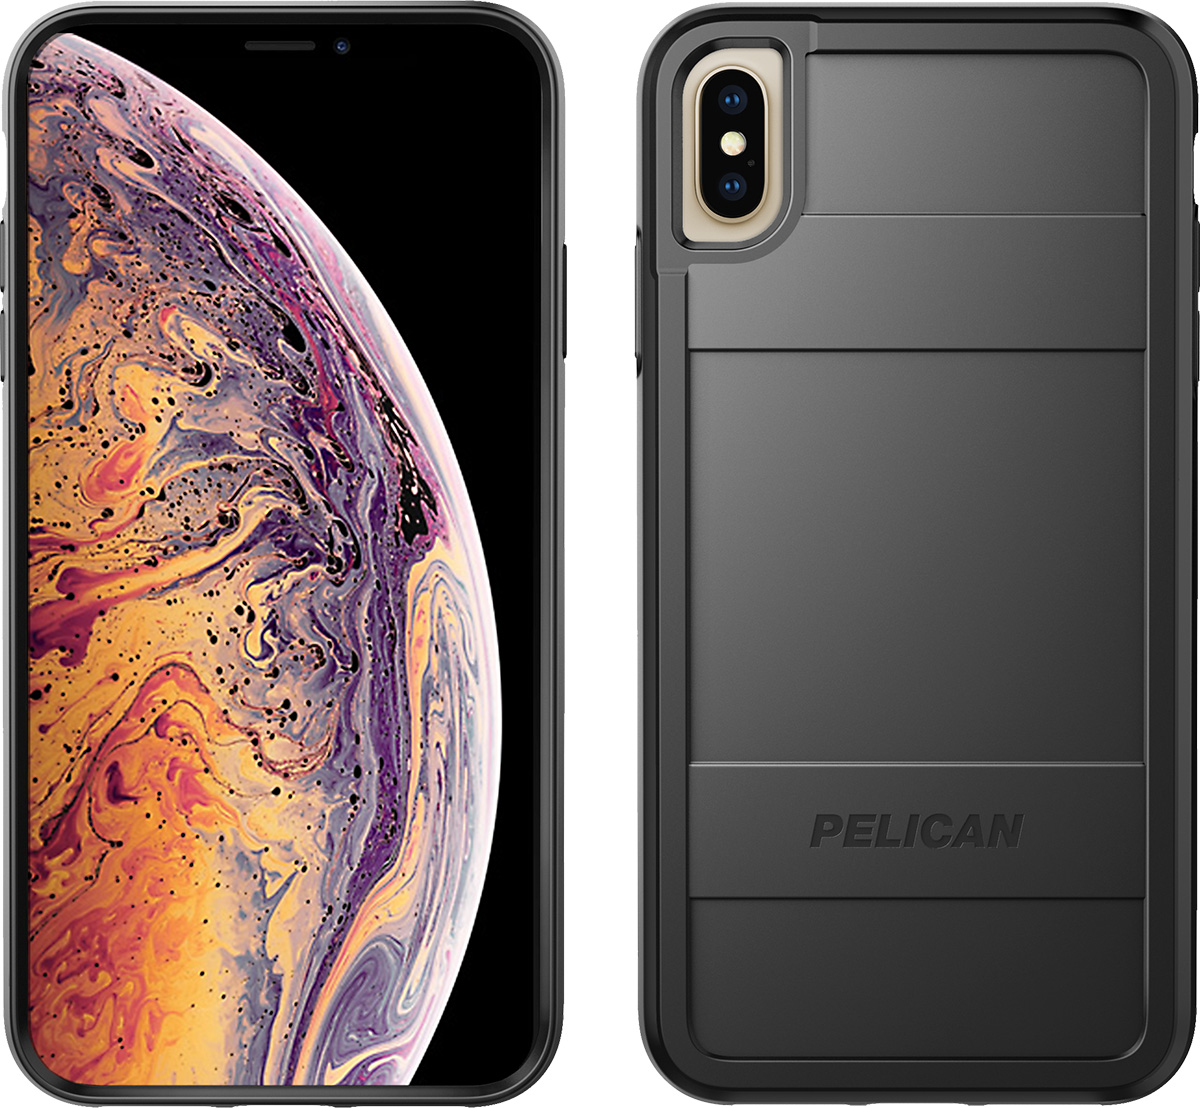 pelican c43000 apple iphone protector black phone case